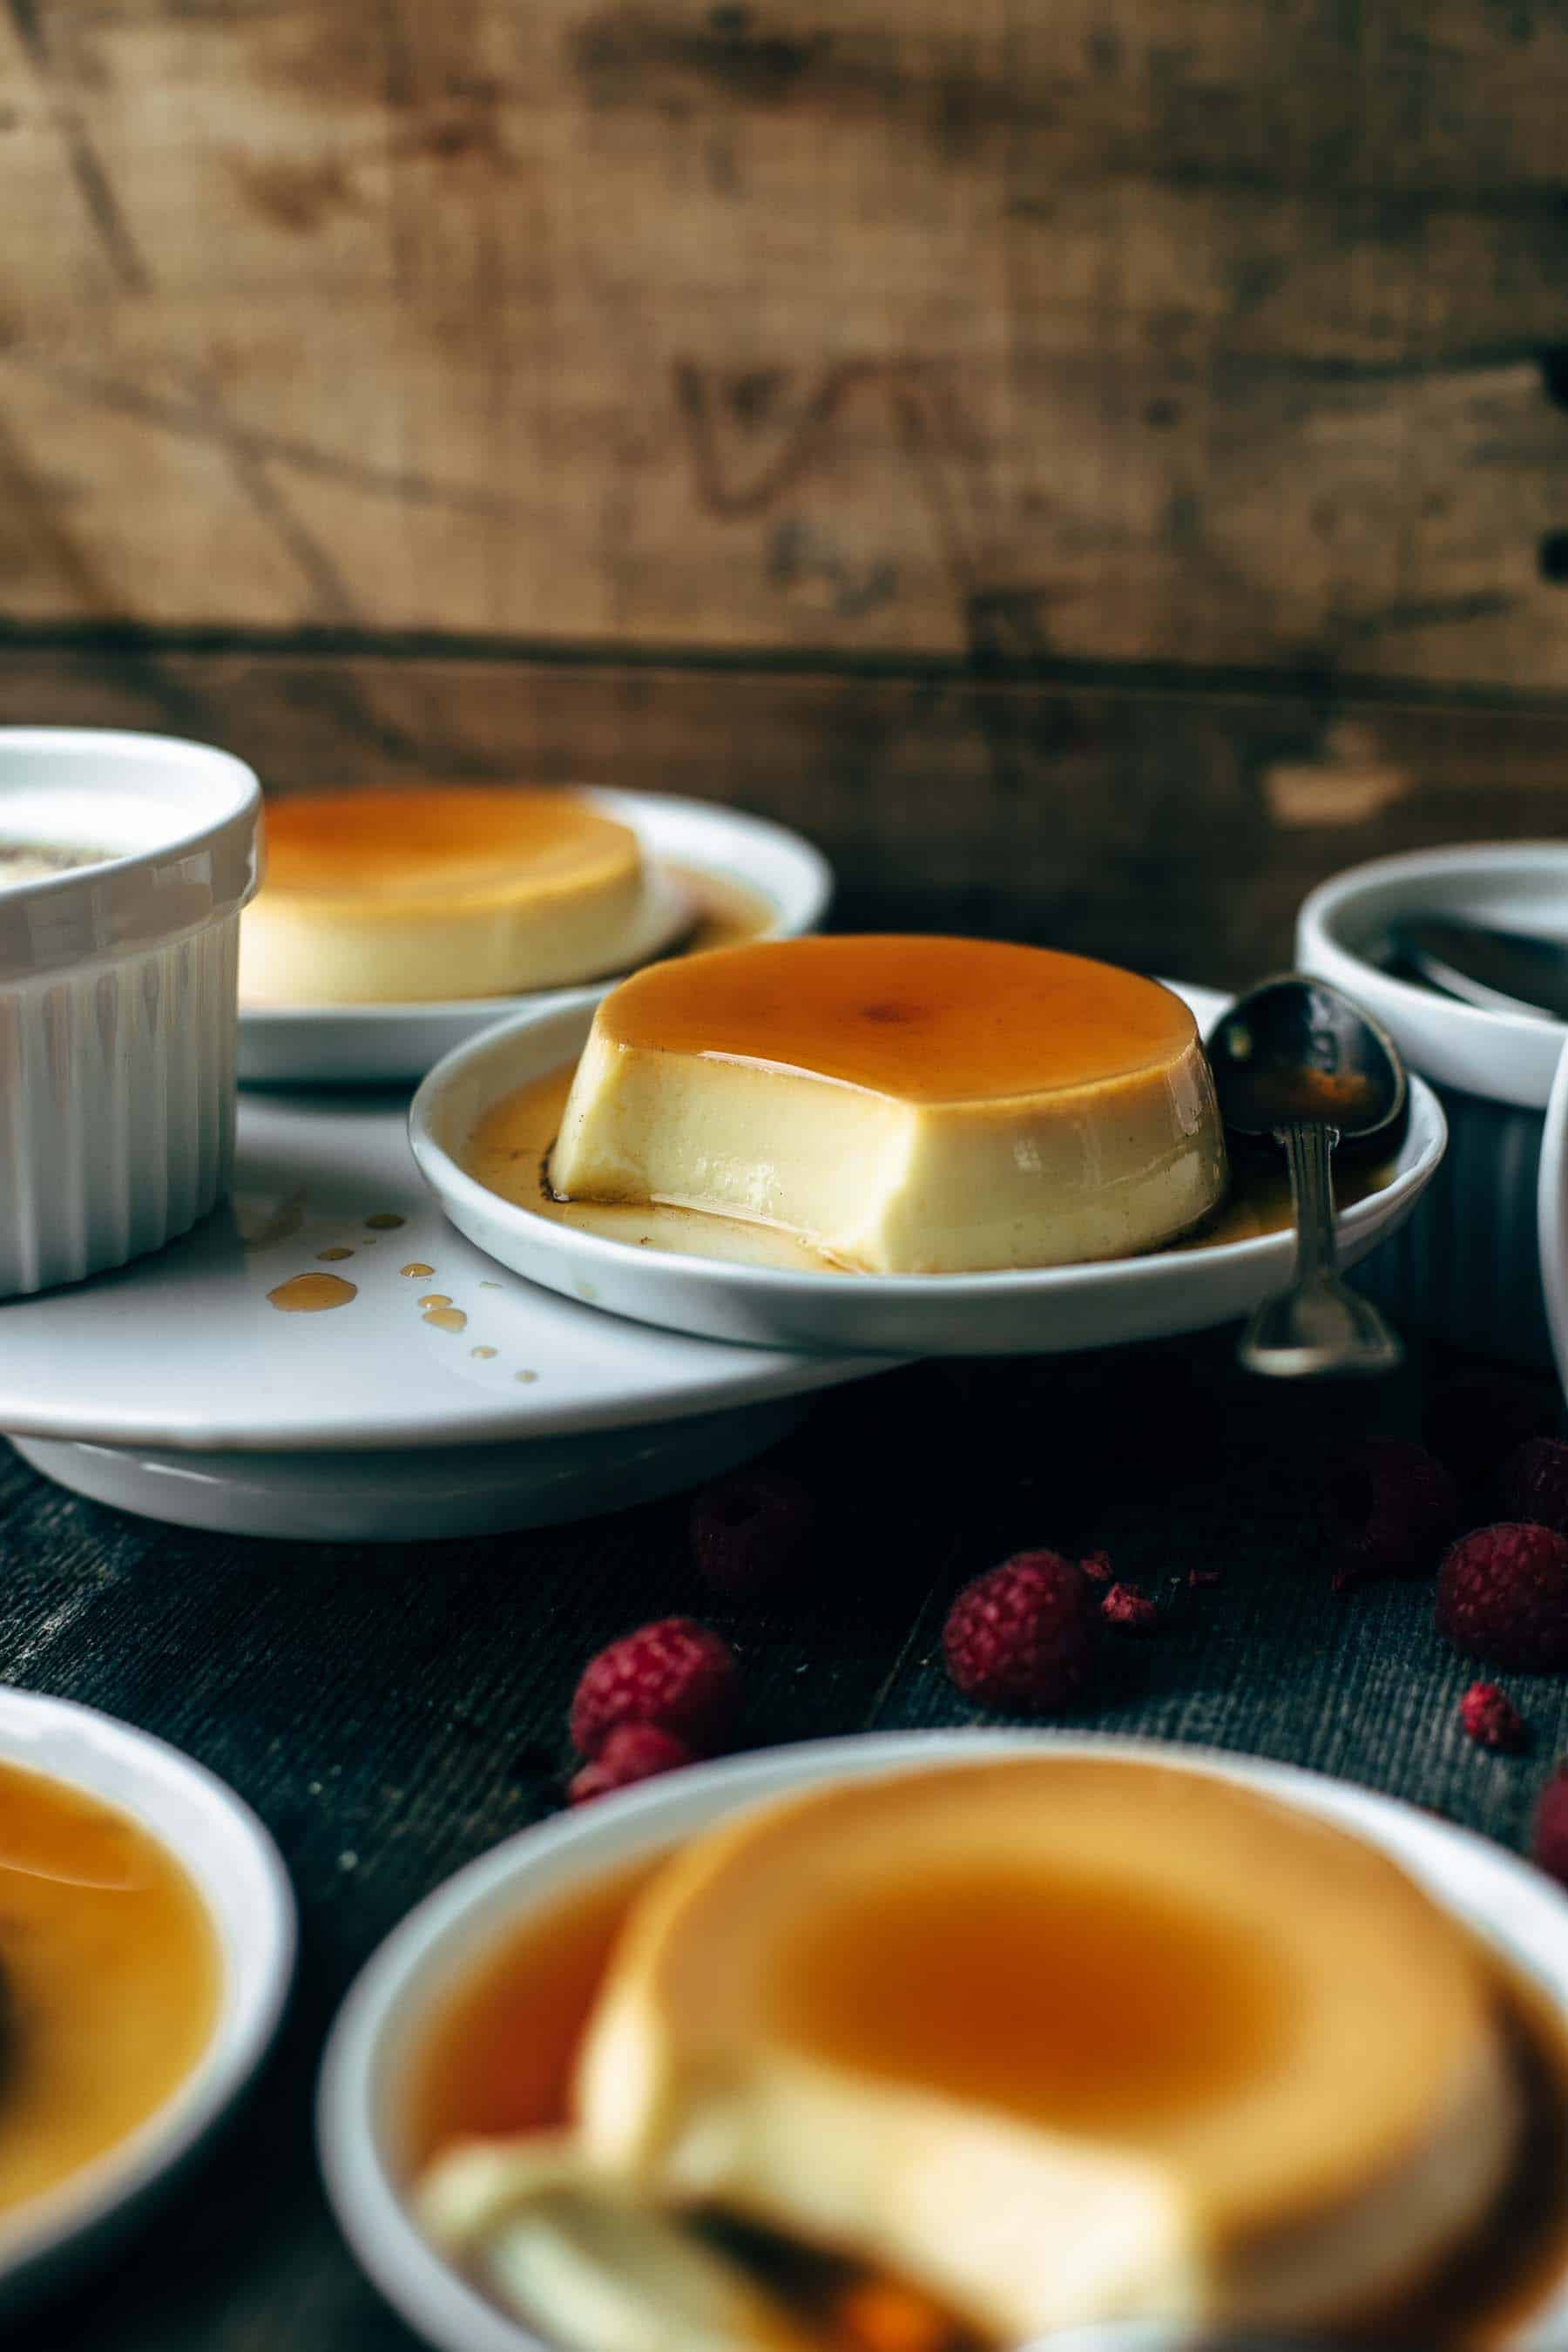 Flan From Scratch : scratch, Original, Spanish, Recipe, Crumbs, Please